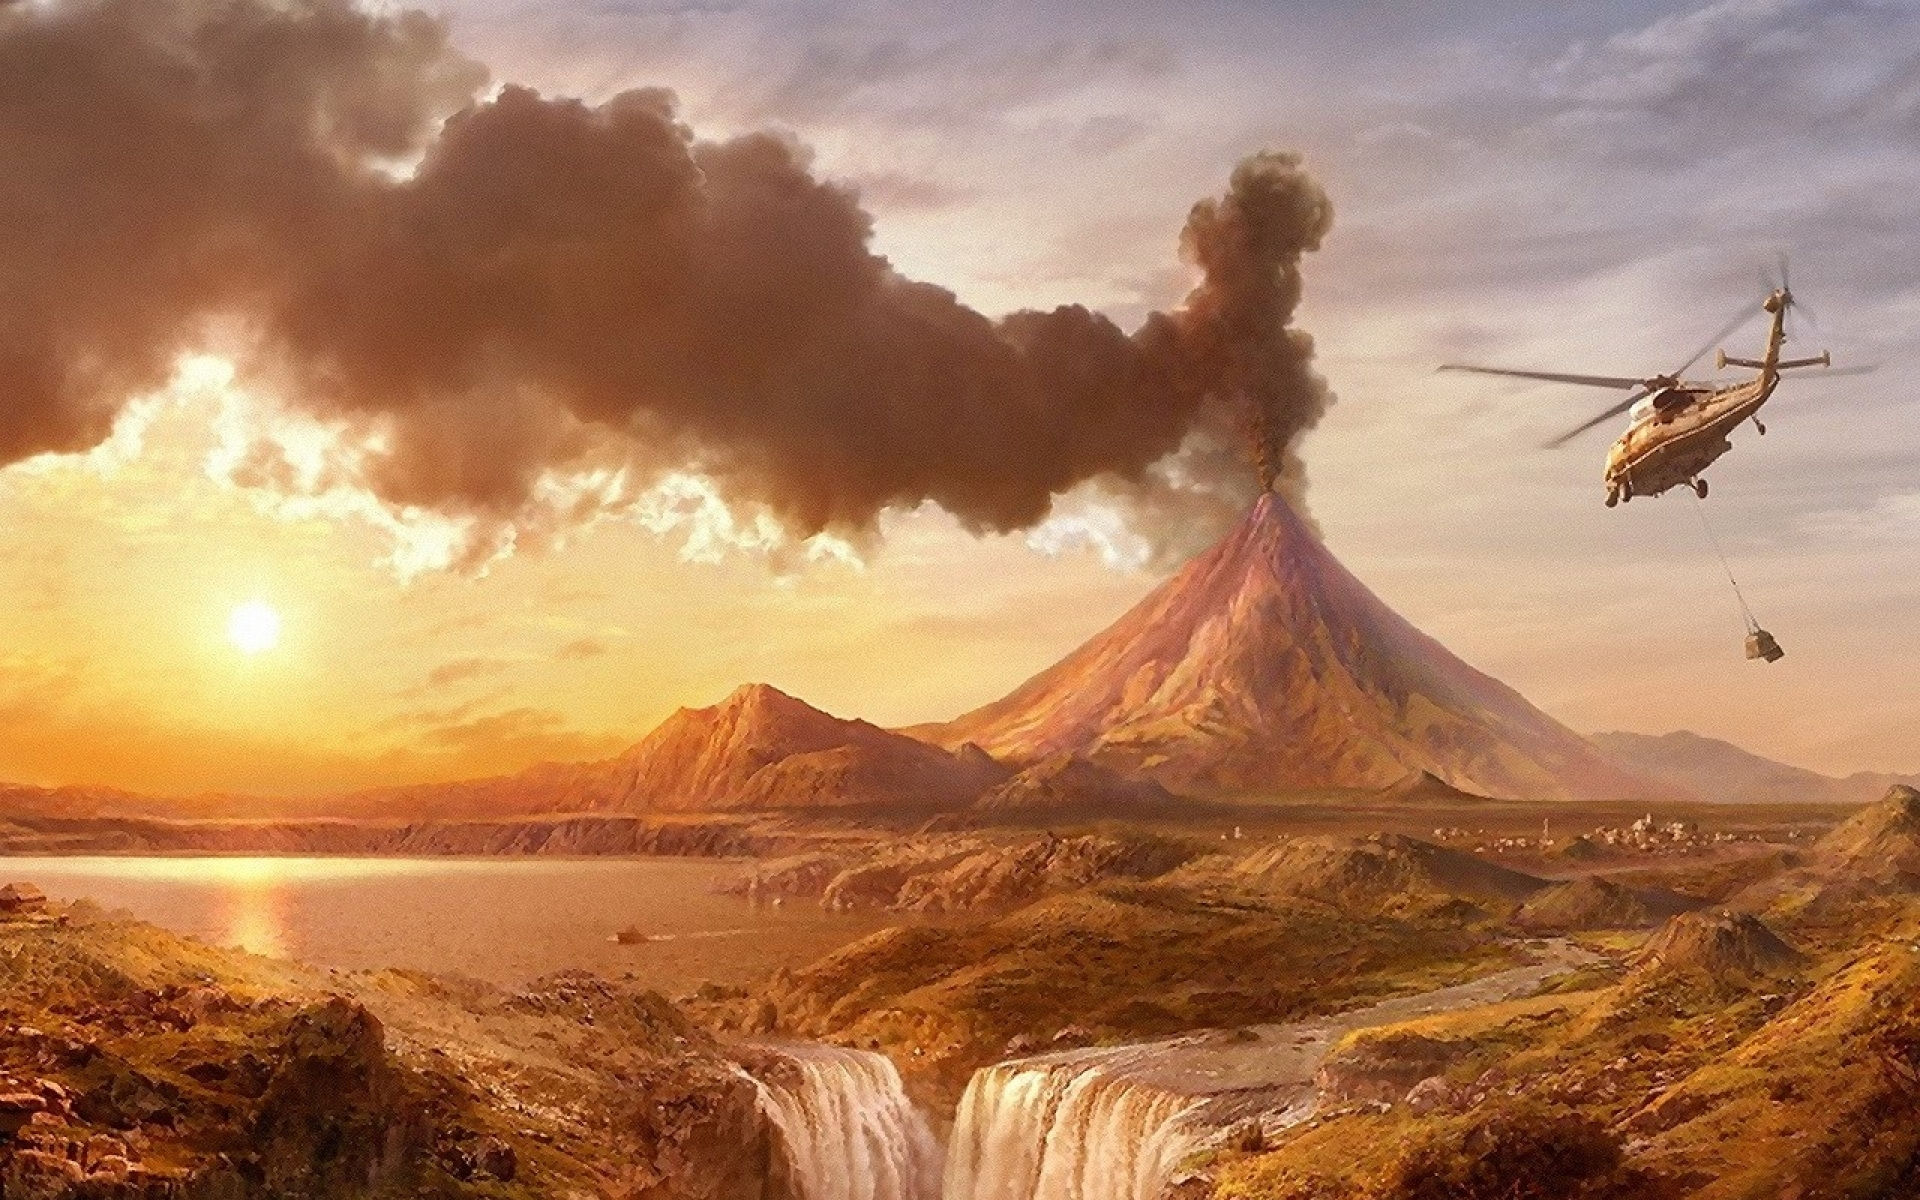 3d Angel Wallpapers Free Volcano Helicopter Amp Scenery Wallpapers Volcano